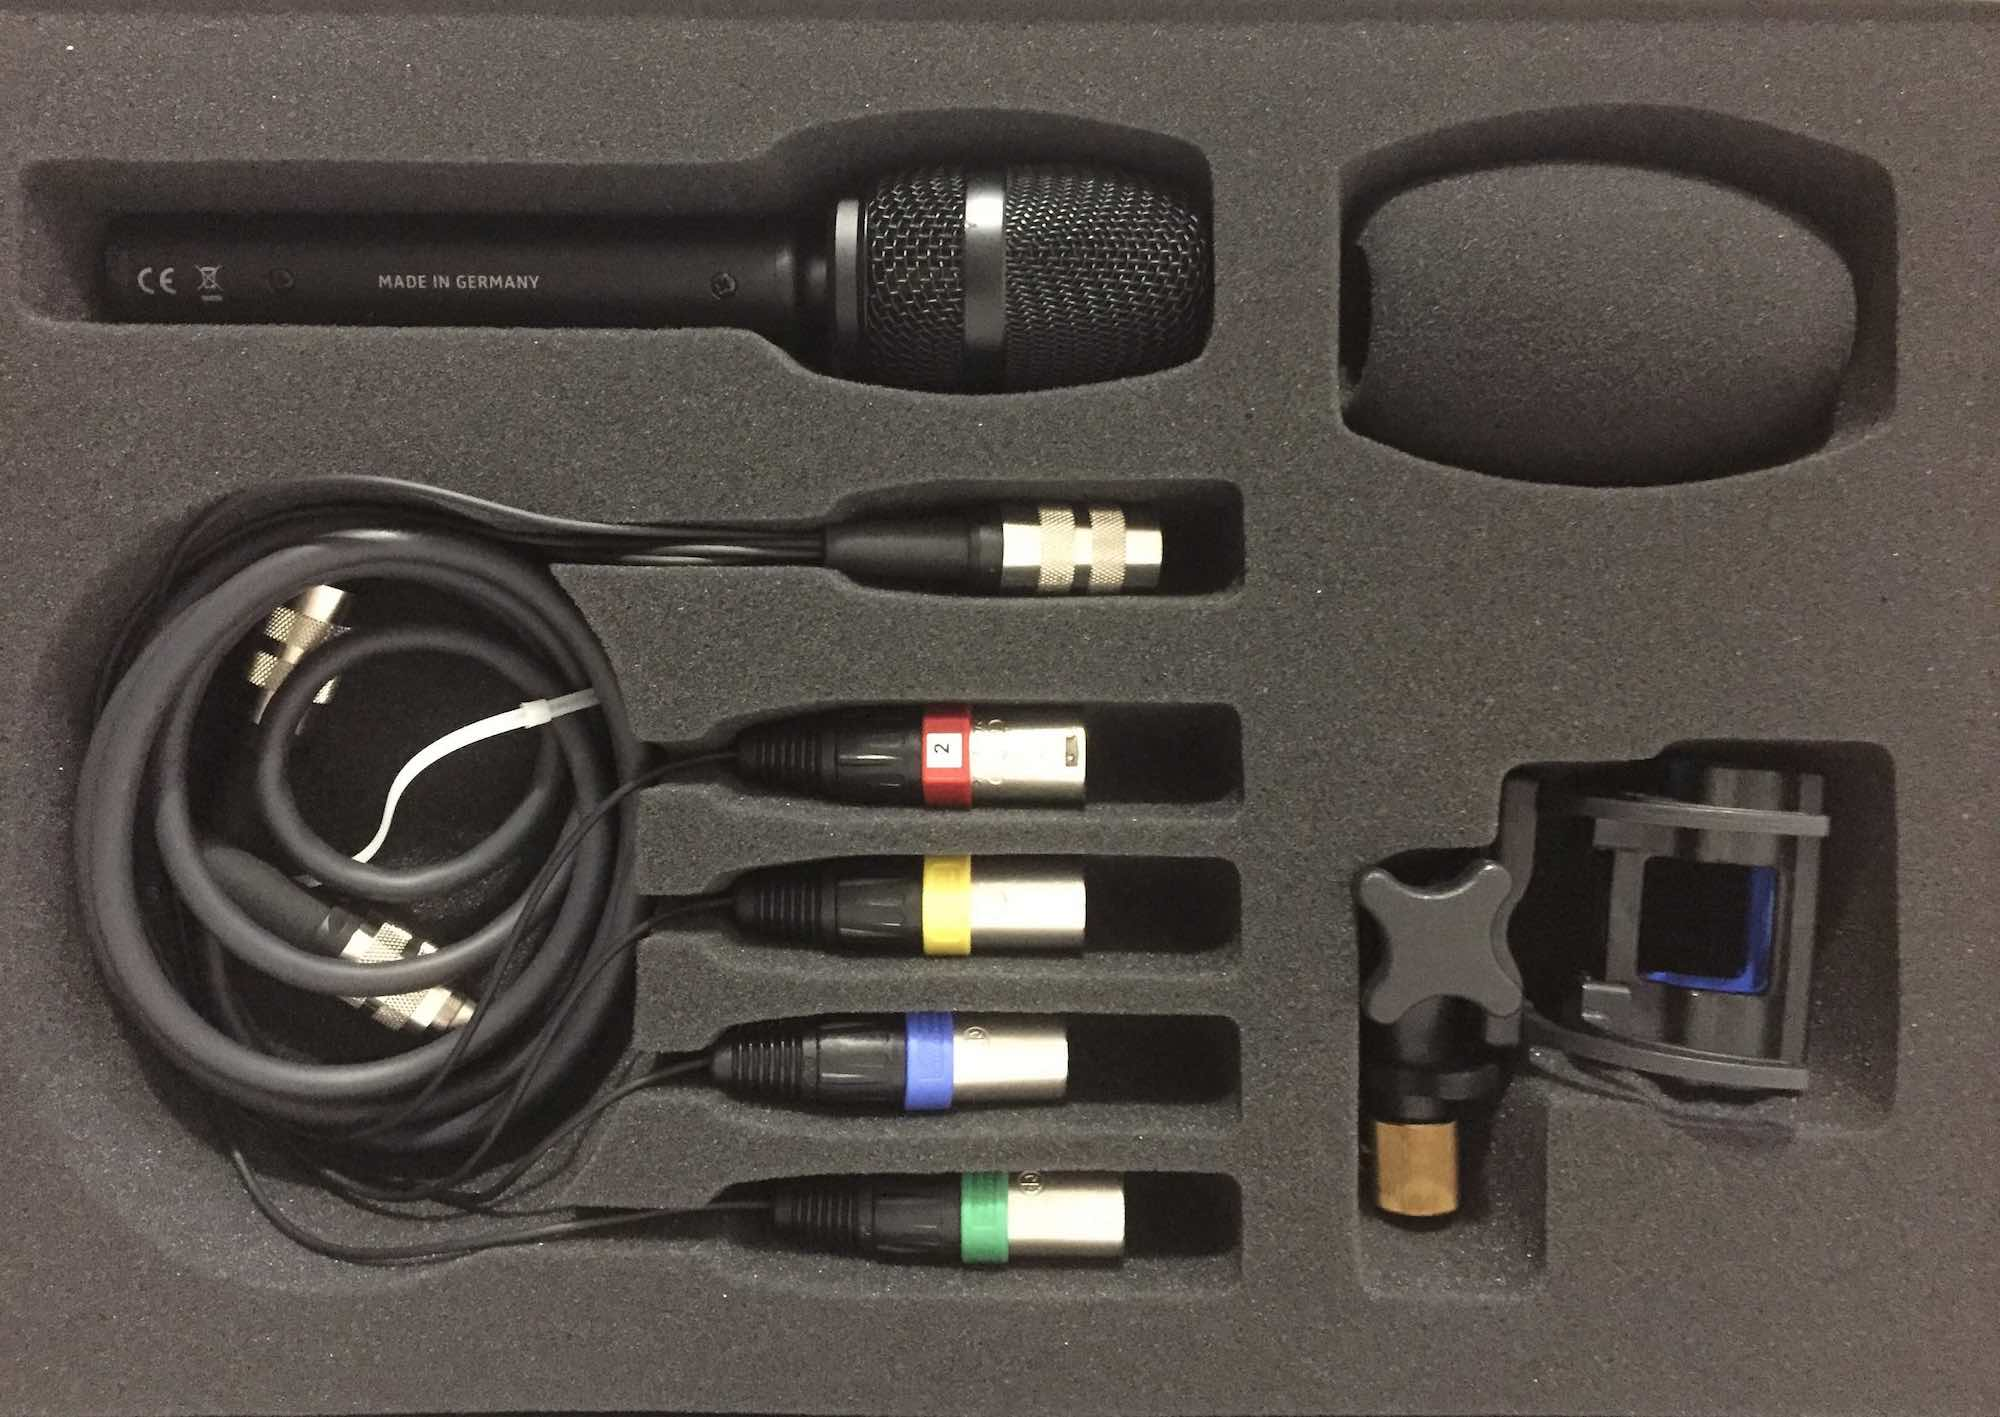 Sennheiser AMBEO VR Mic exhibo surround multicanale test audiofader box xlr cavi prezzo